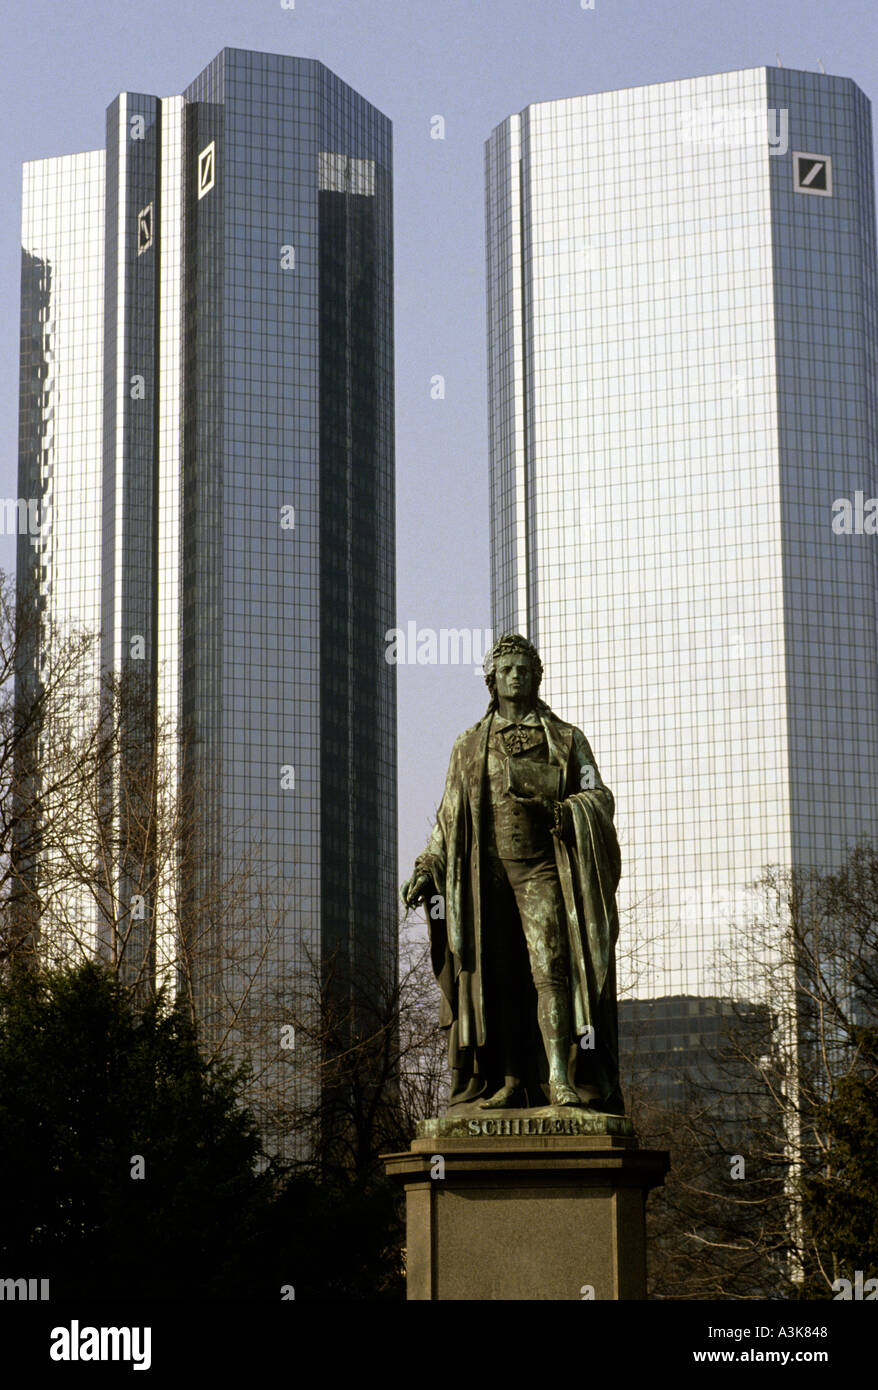 Statue of Schiller against the headquarters of the Deutsche Bank and corporate offices in Frankfurt, Germany - Stock Image